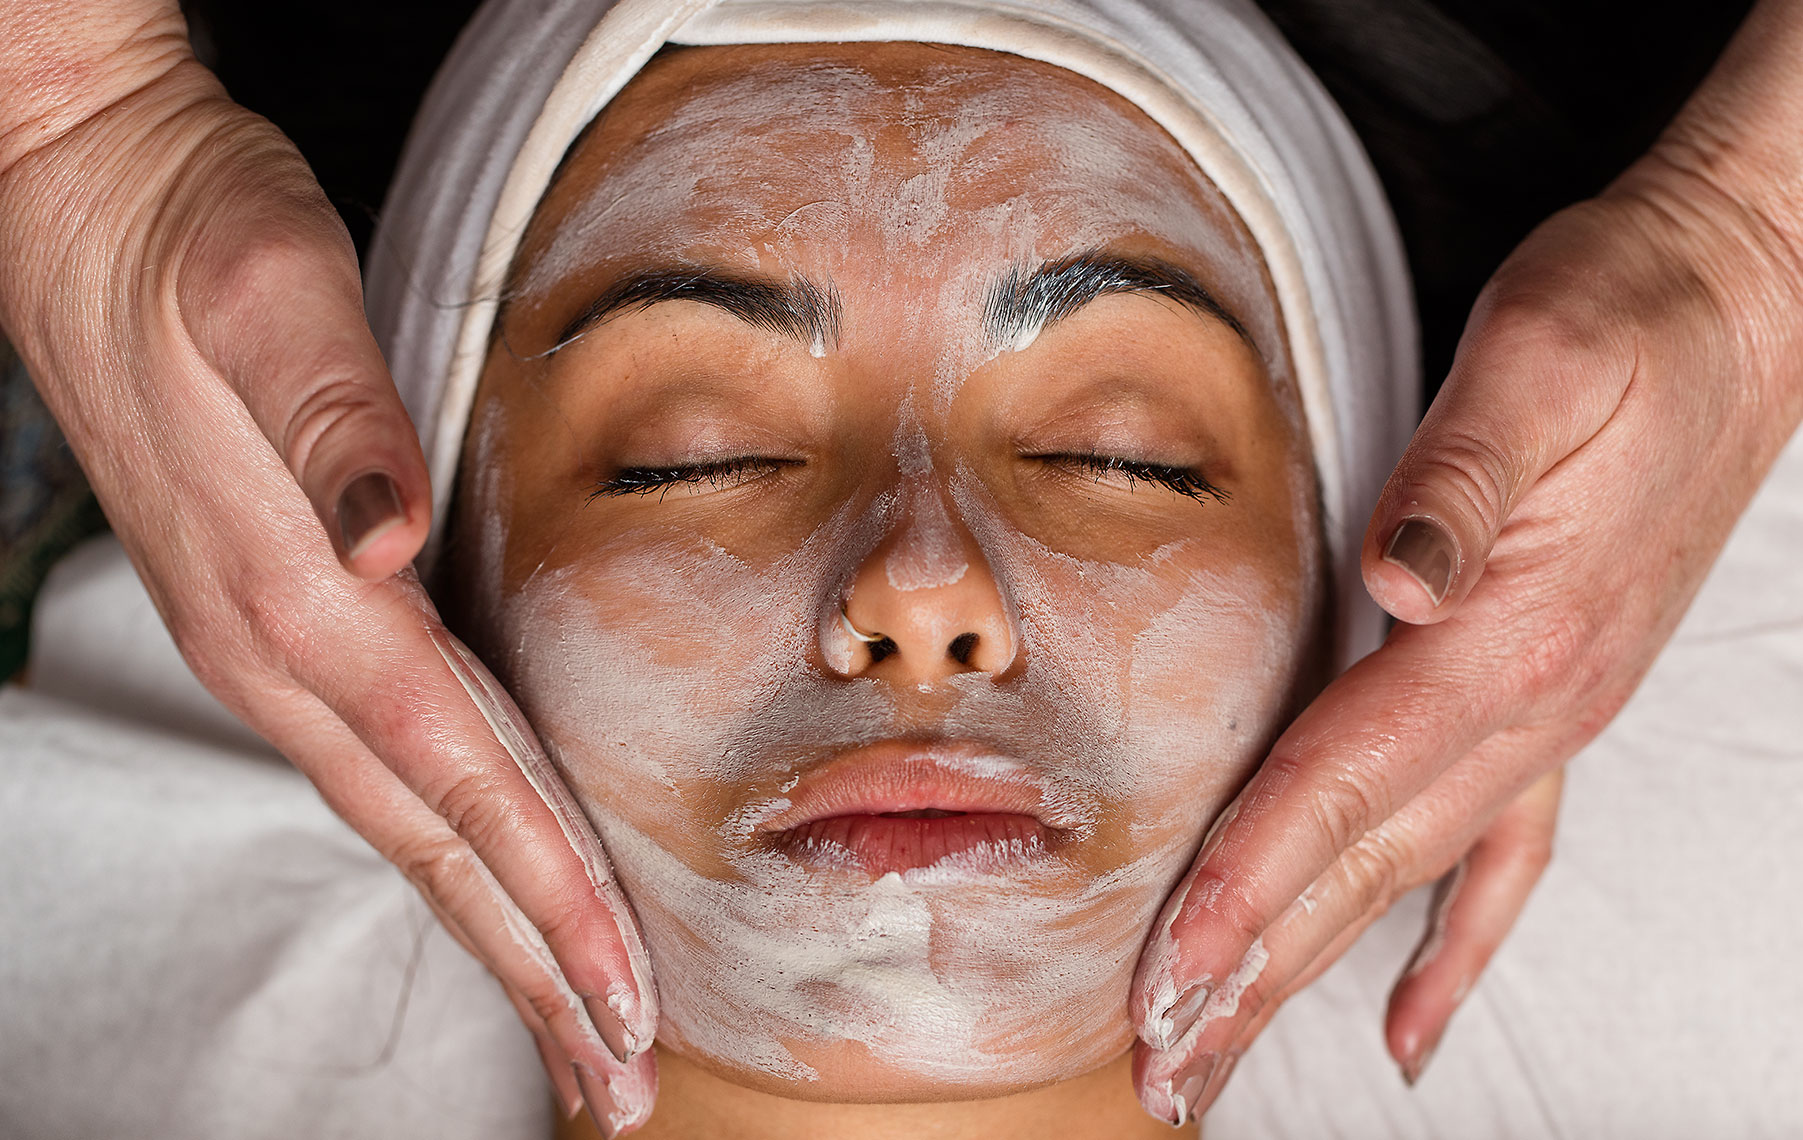 Hands of beauty therapist applying a facial mask to relaxed young lady